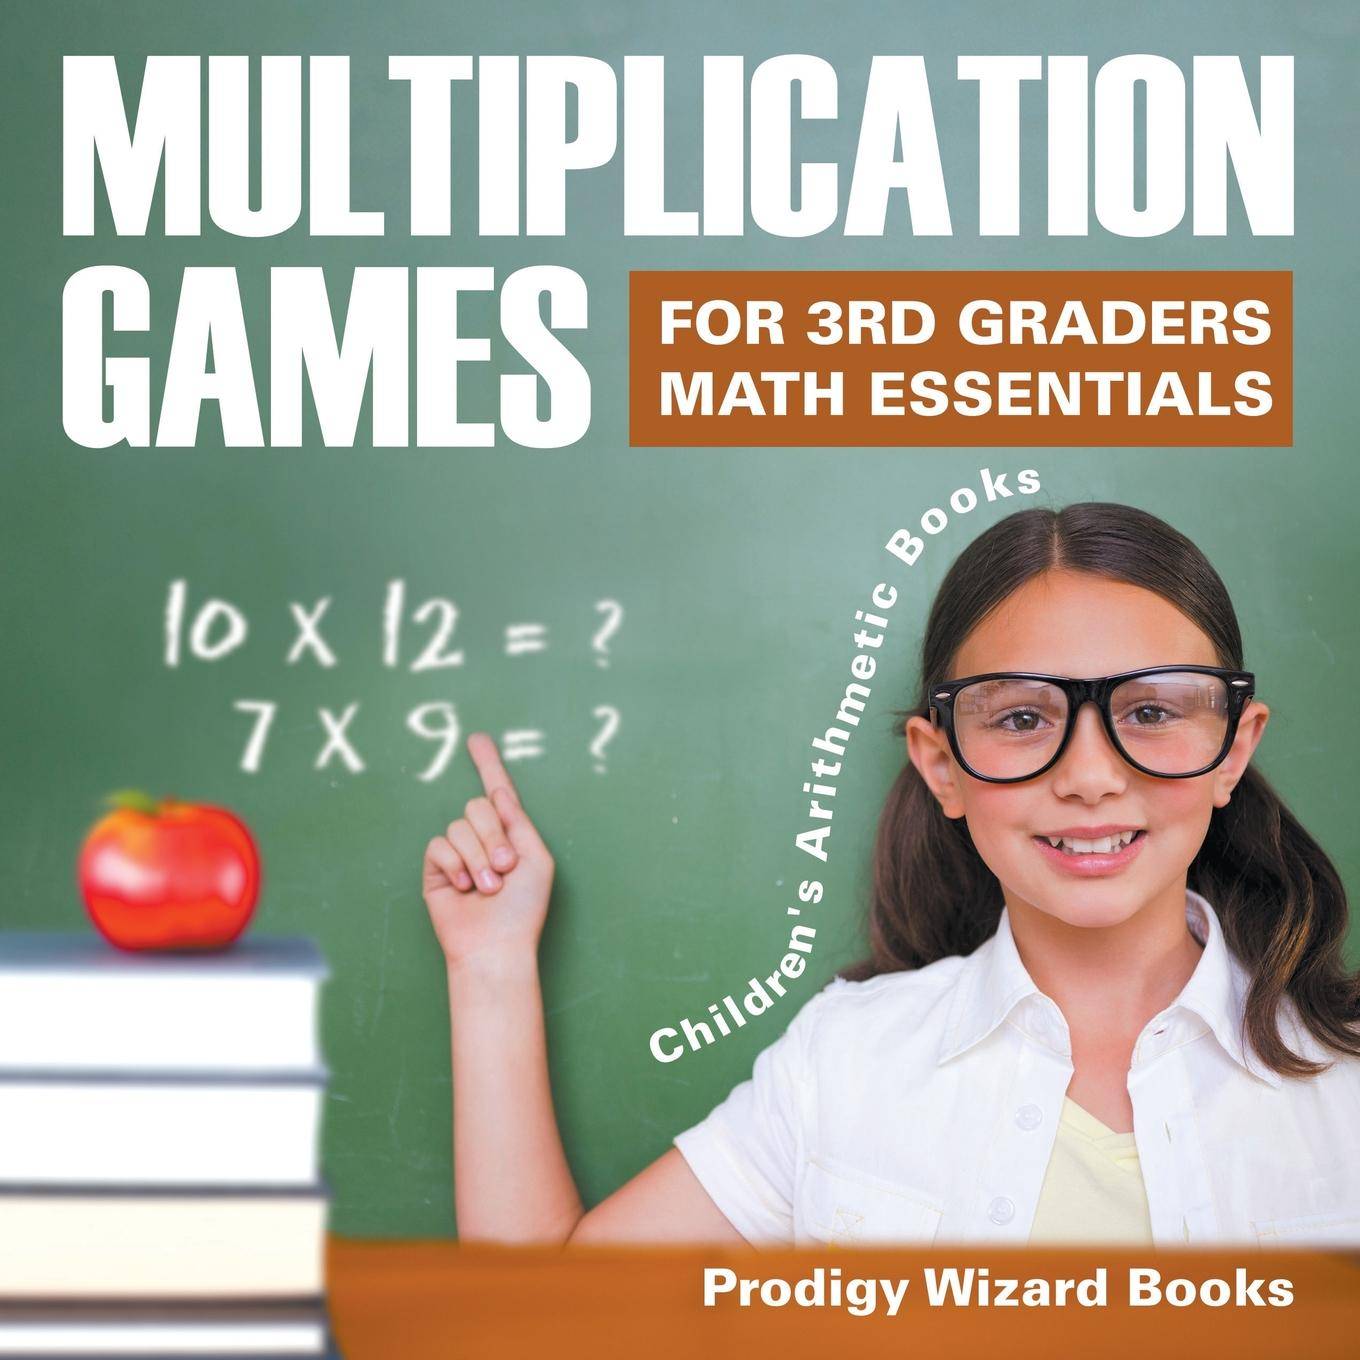 Multiplication Games for 3rd Graders Math Essentials Children's Arithmetic Books